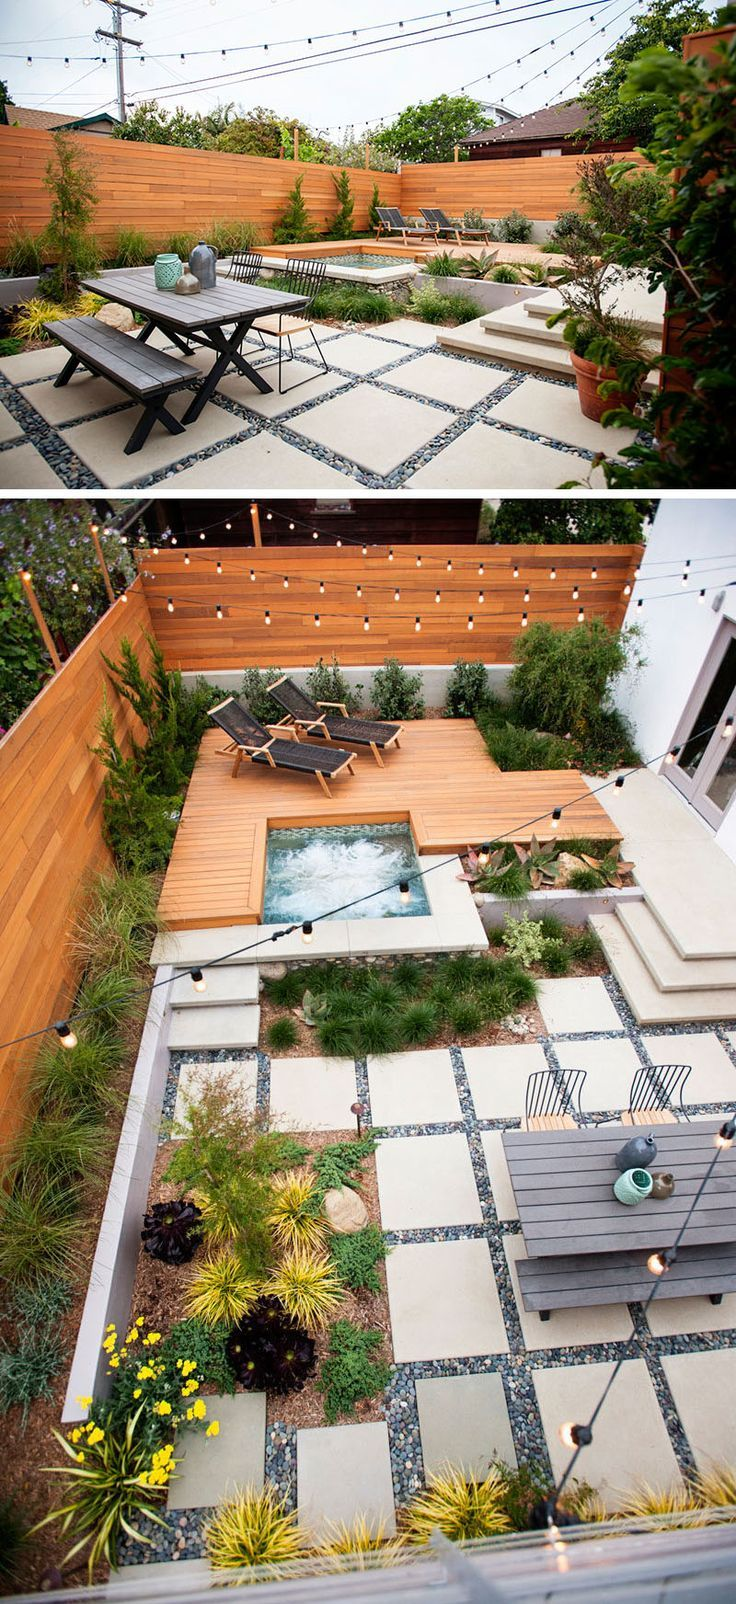 landscaping design ideas 11 backyards designed for on layouts and landscaping small backyards ideas id=92141